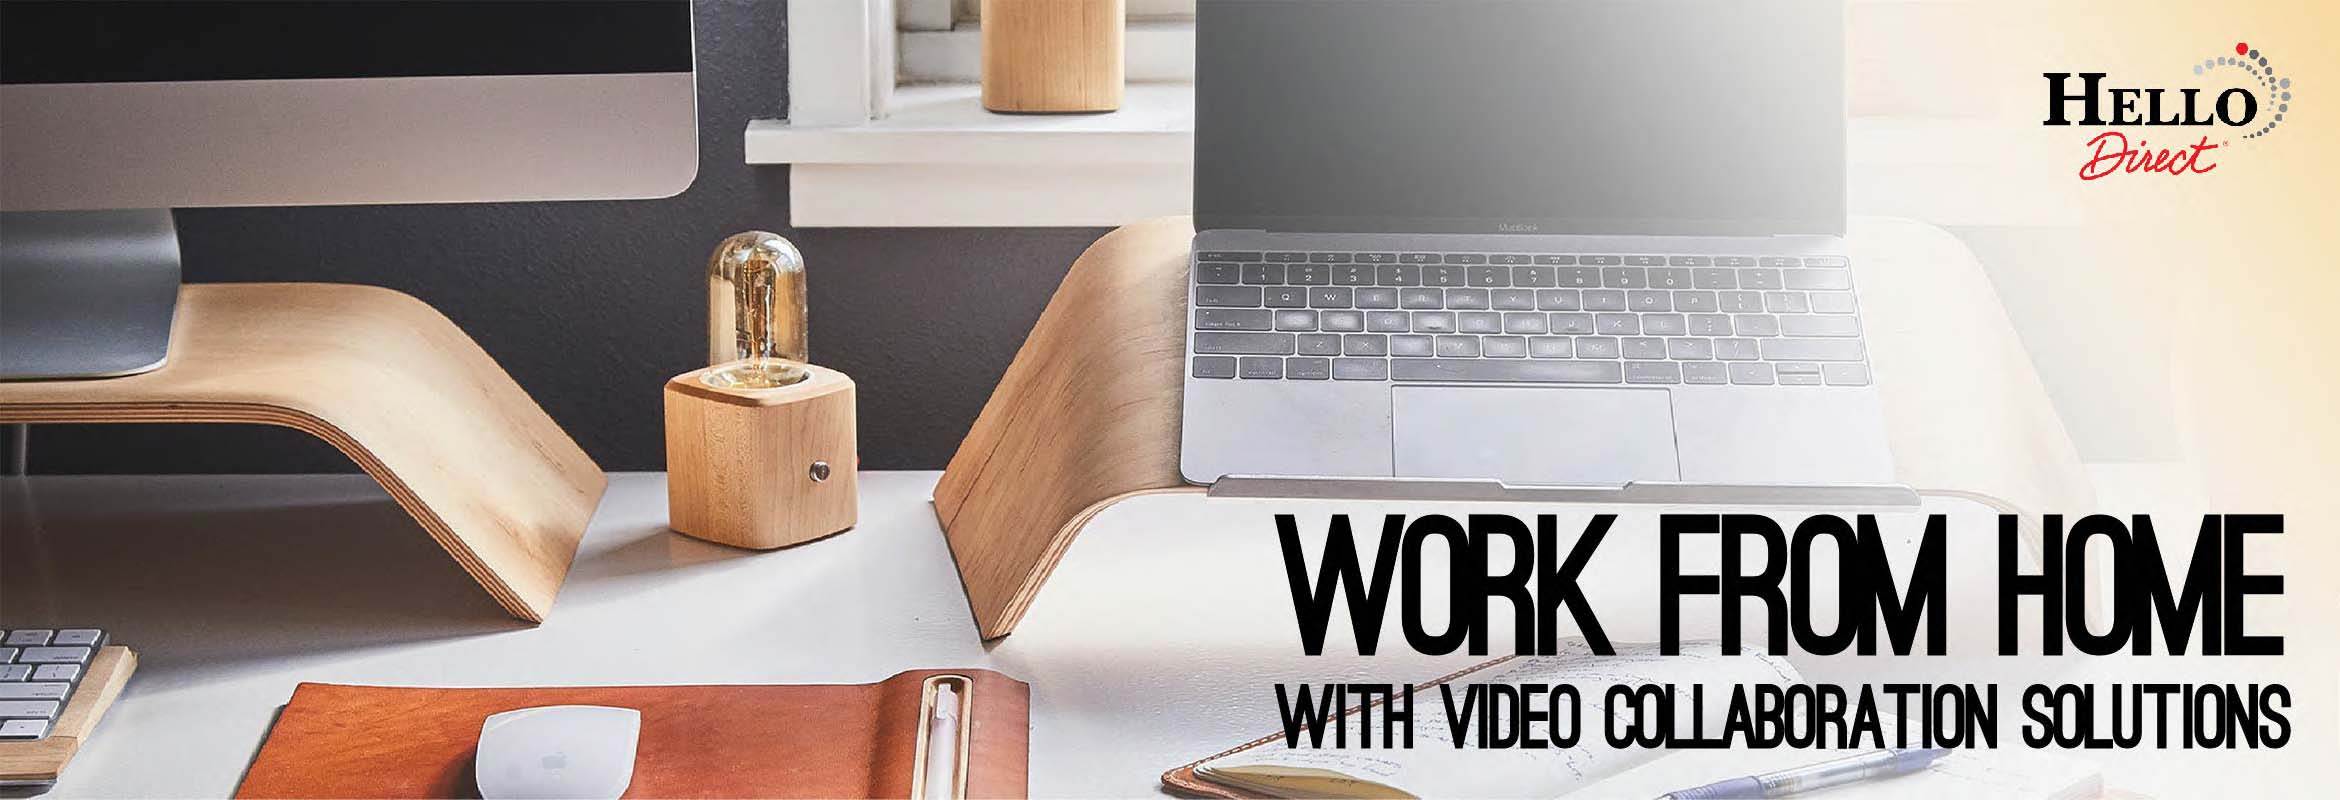 Work From Home Video Conferencing at Hello Direct